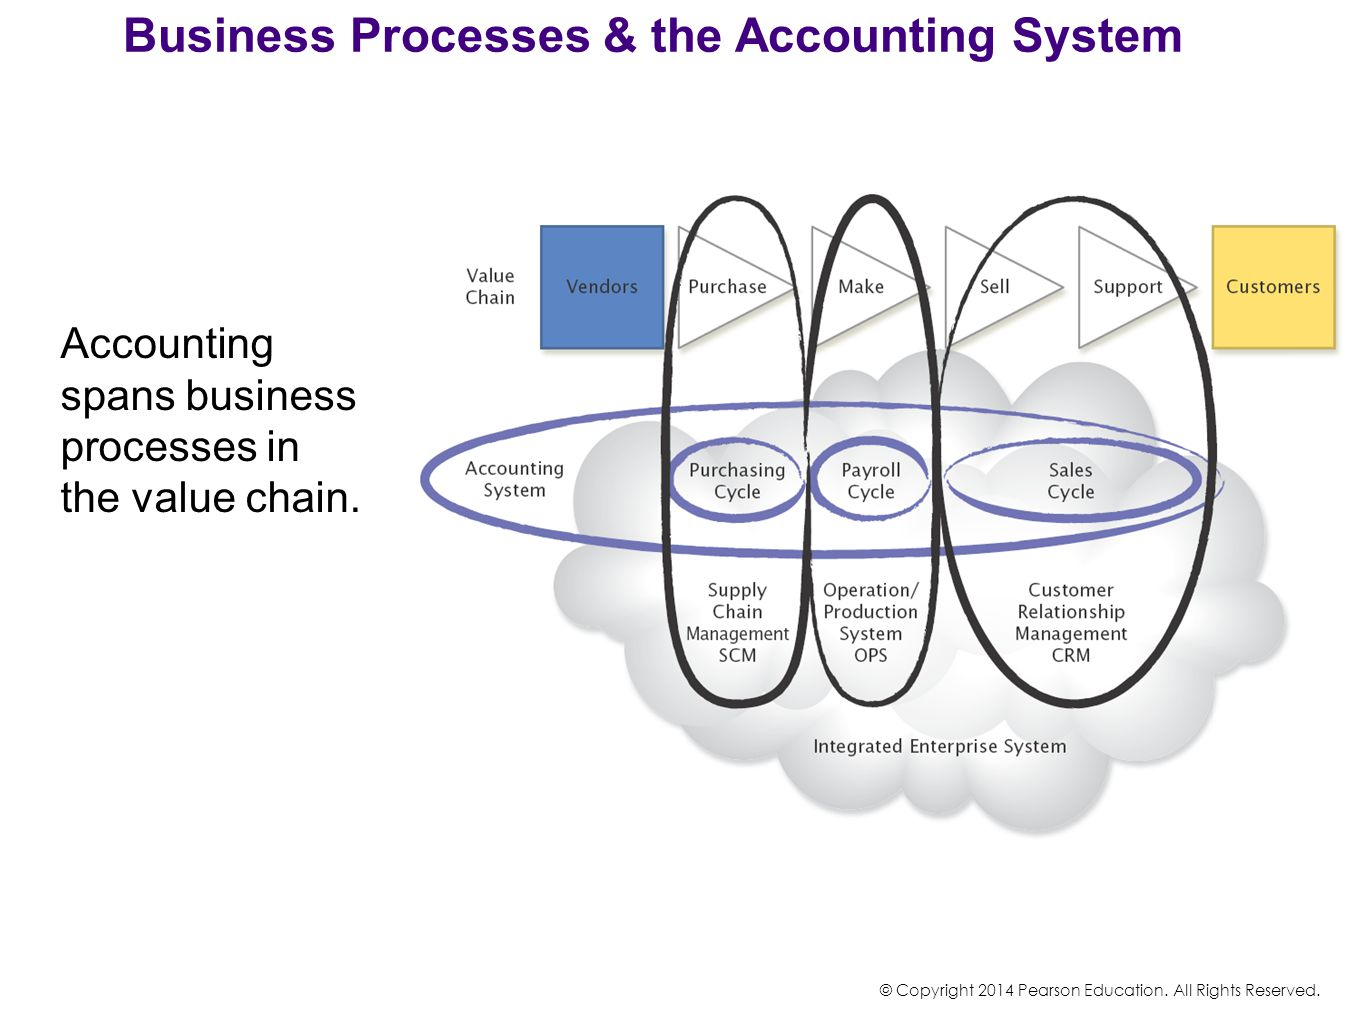 Business Processes & the Accounting System